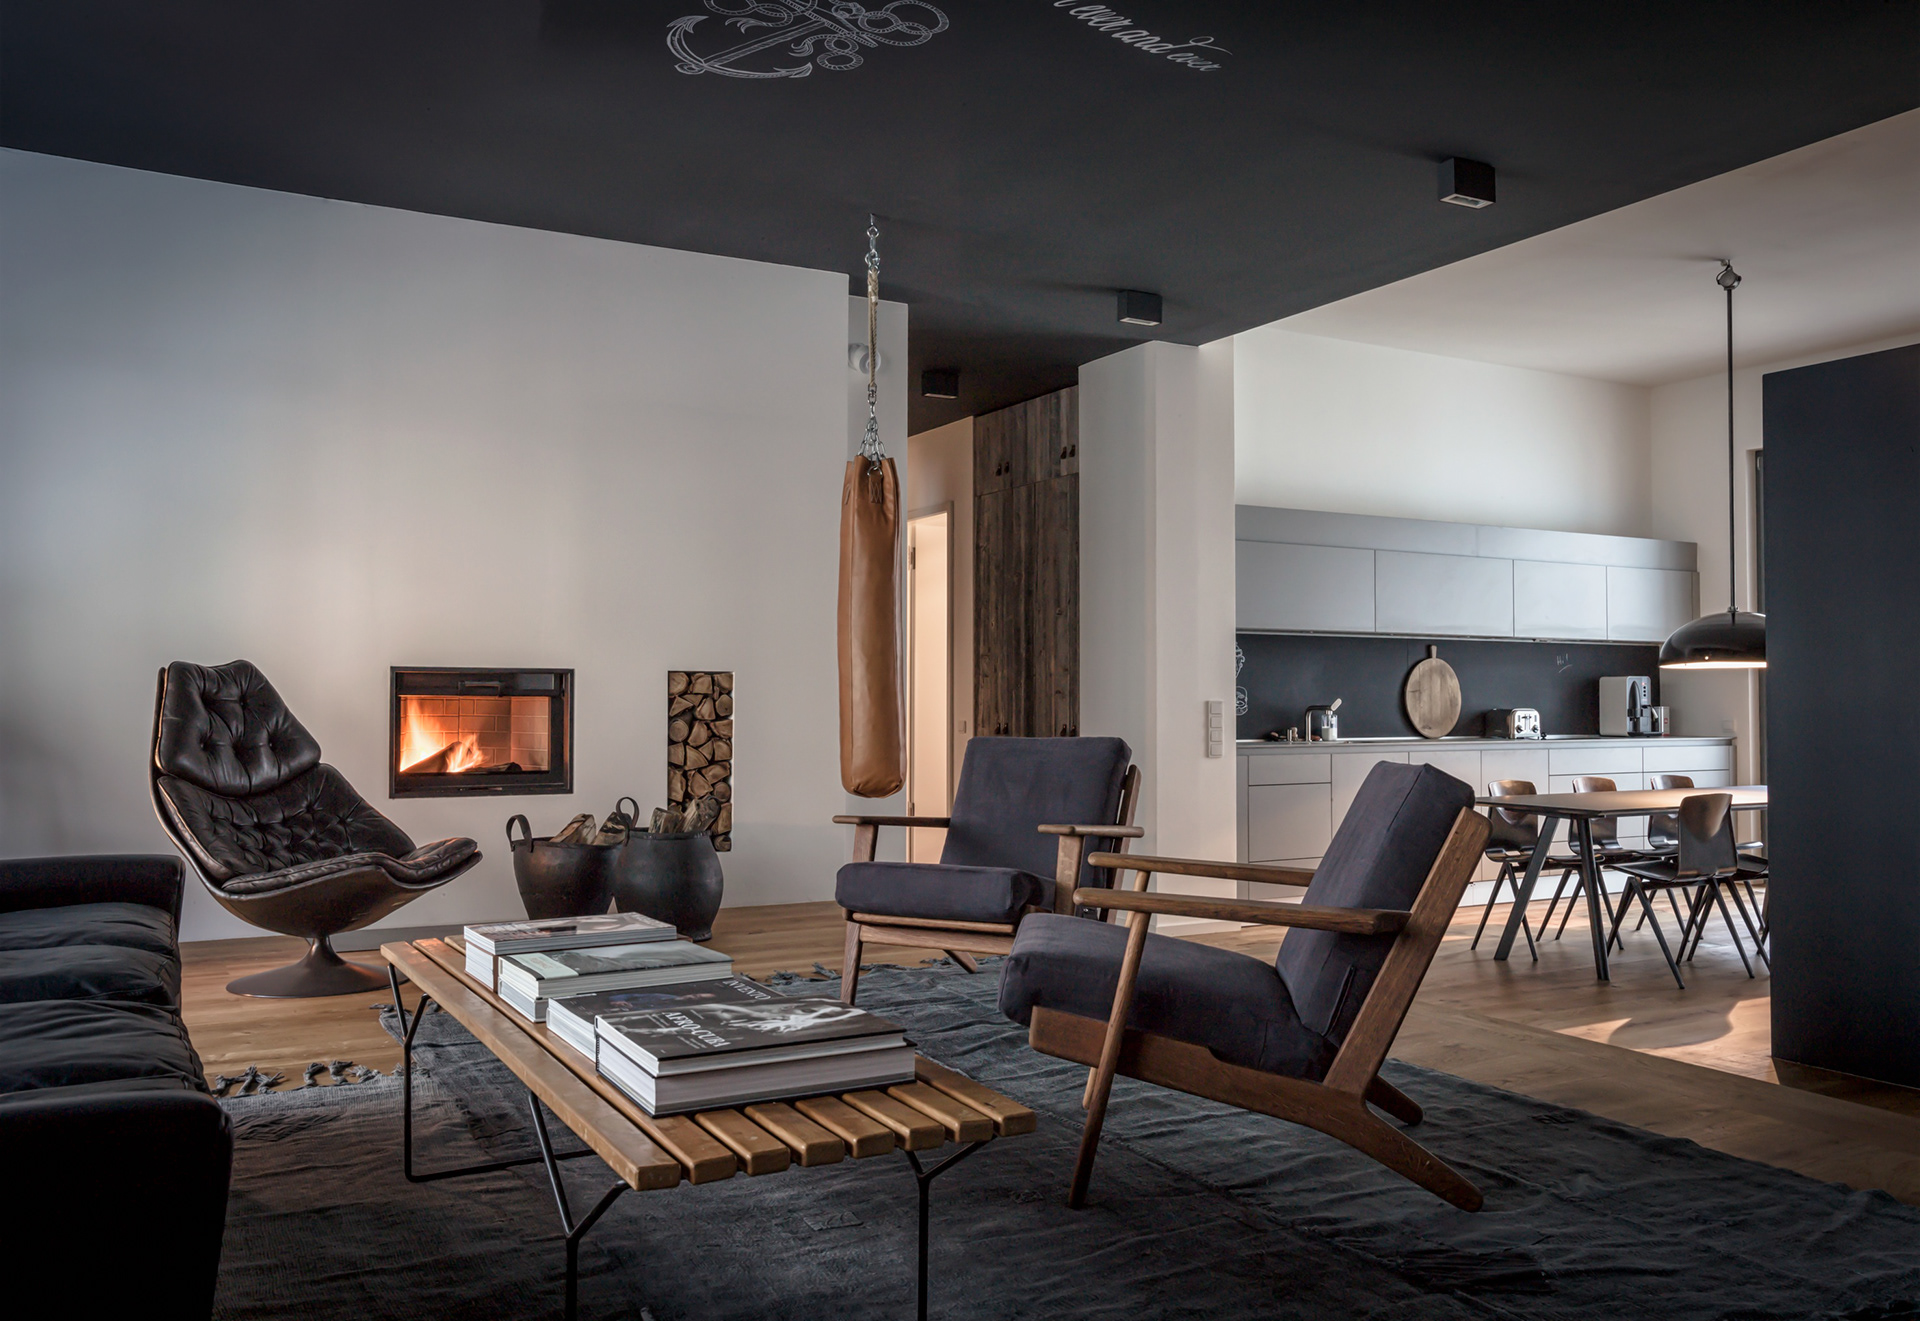 The eclectic design is an homage to berlin and its creative diversity